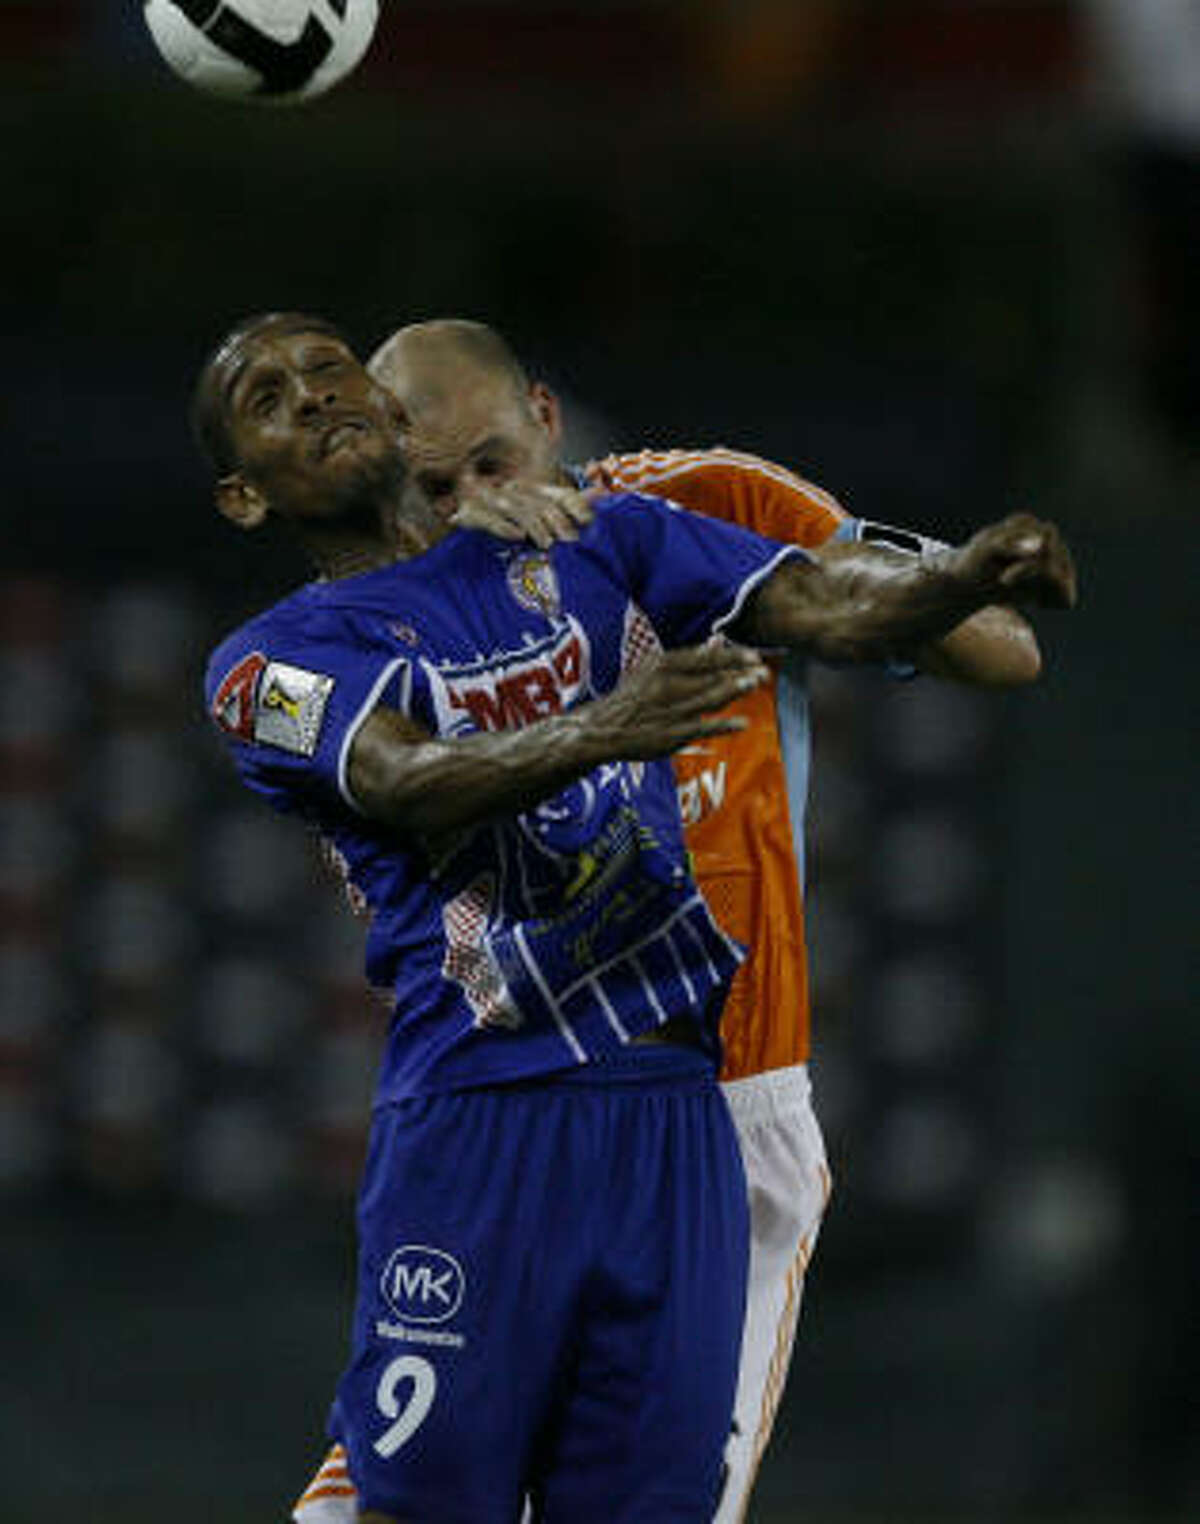 AD Isidro Metapan Anel Alejandro Canales (9) and Houston Dynamo defender Craig Waibel go up for the ball in the second half of a CONCACAF Champions League Tournament game between the Houston Dynamo and AD Isidro Metapan (El Salvador) at Robertson Stadium on Wednesday, Aug. 19, 2009, in Houston.